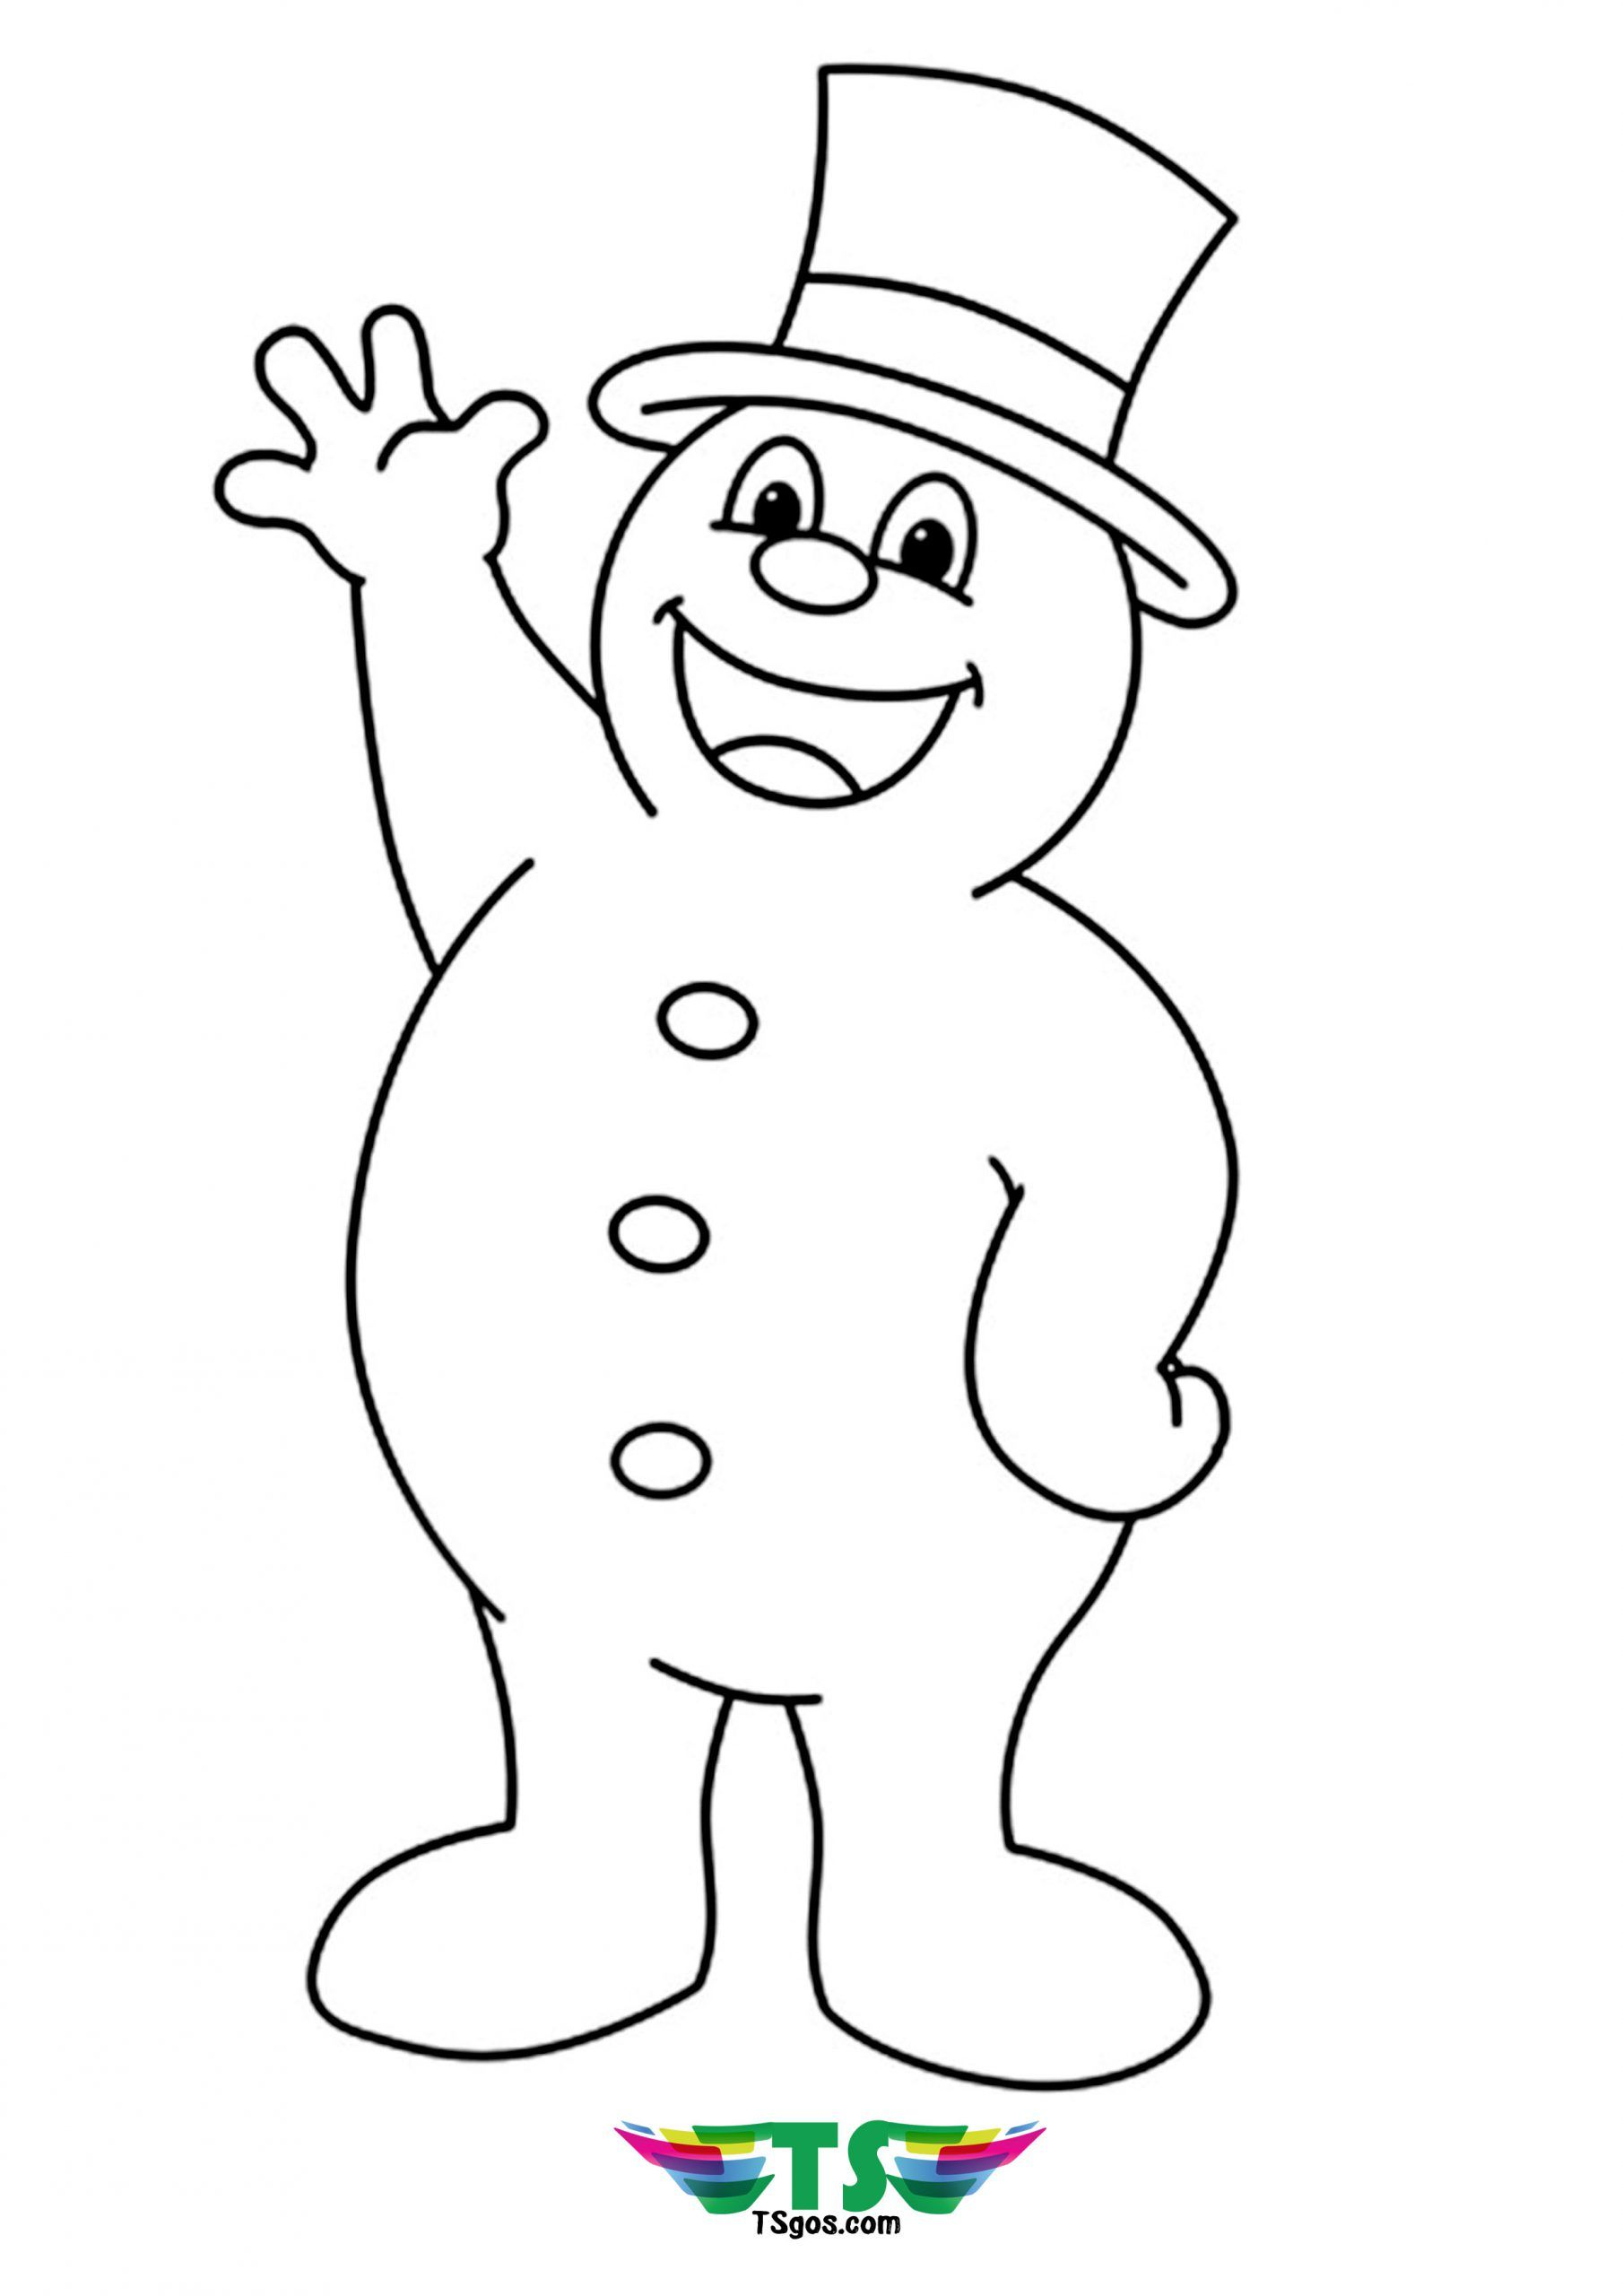 Frosty The Snowman Coloring Page Elsa coloring pages